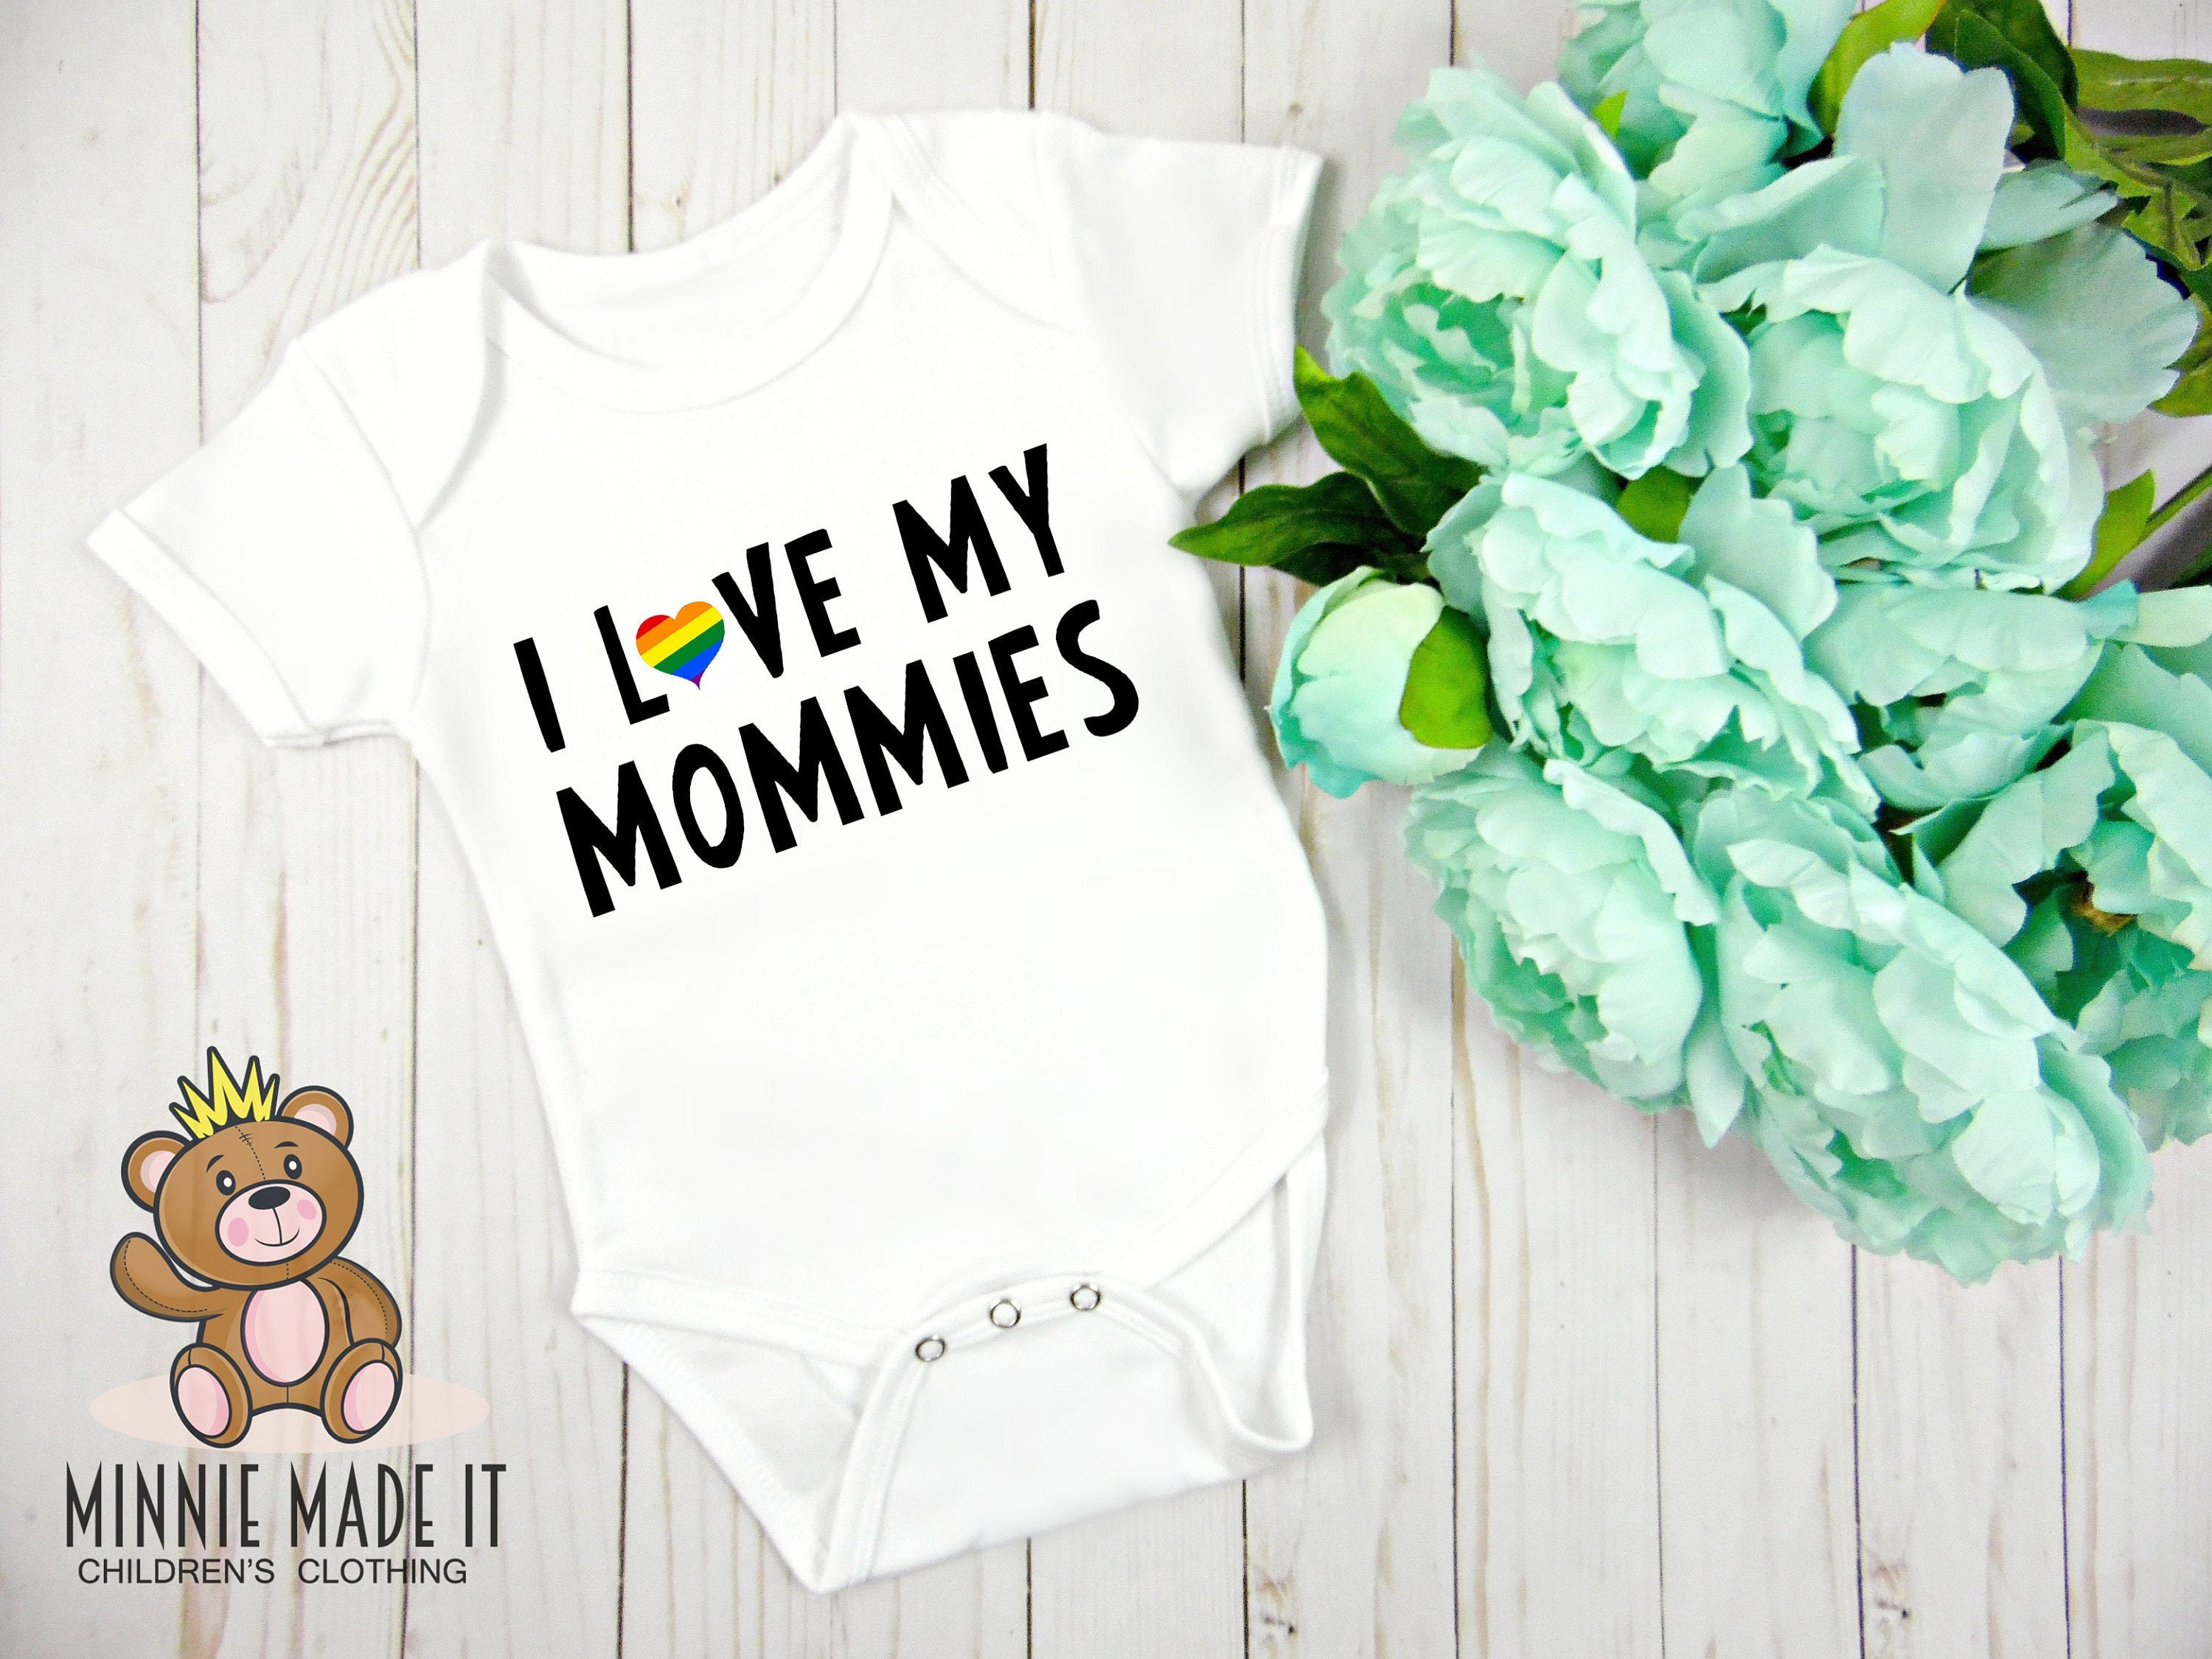 Tstars I Love My Moms Gay Pride Infant Valentines Baby Bodysuit